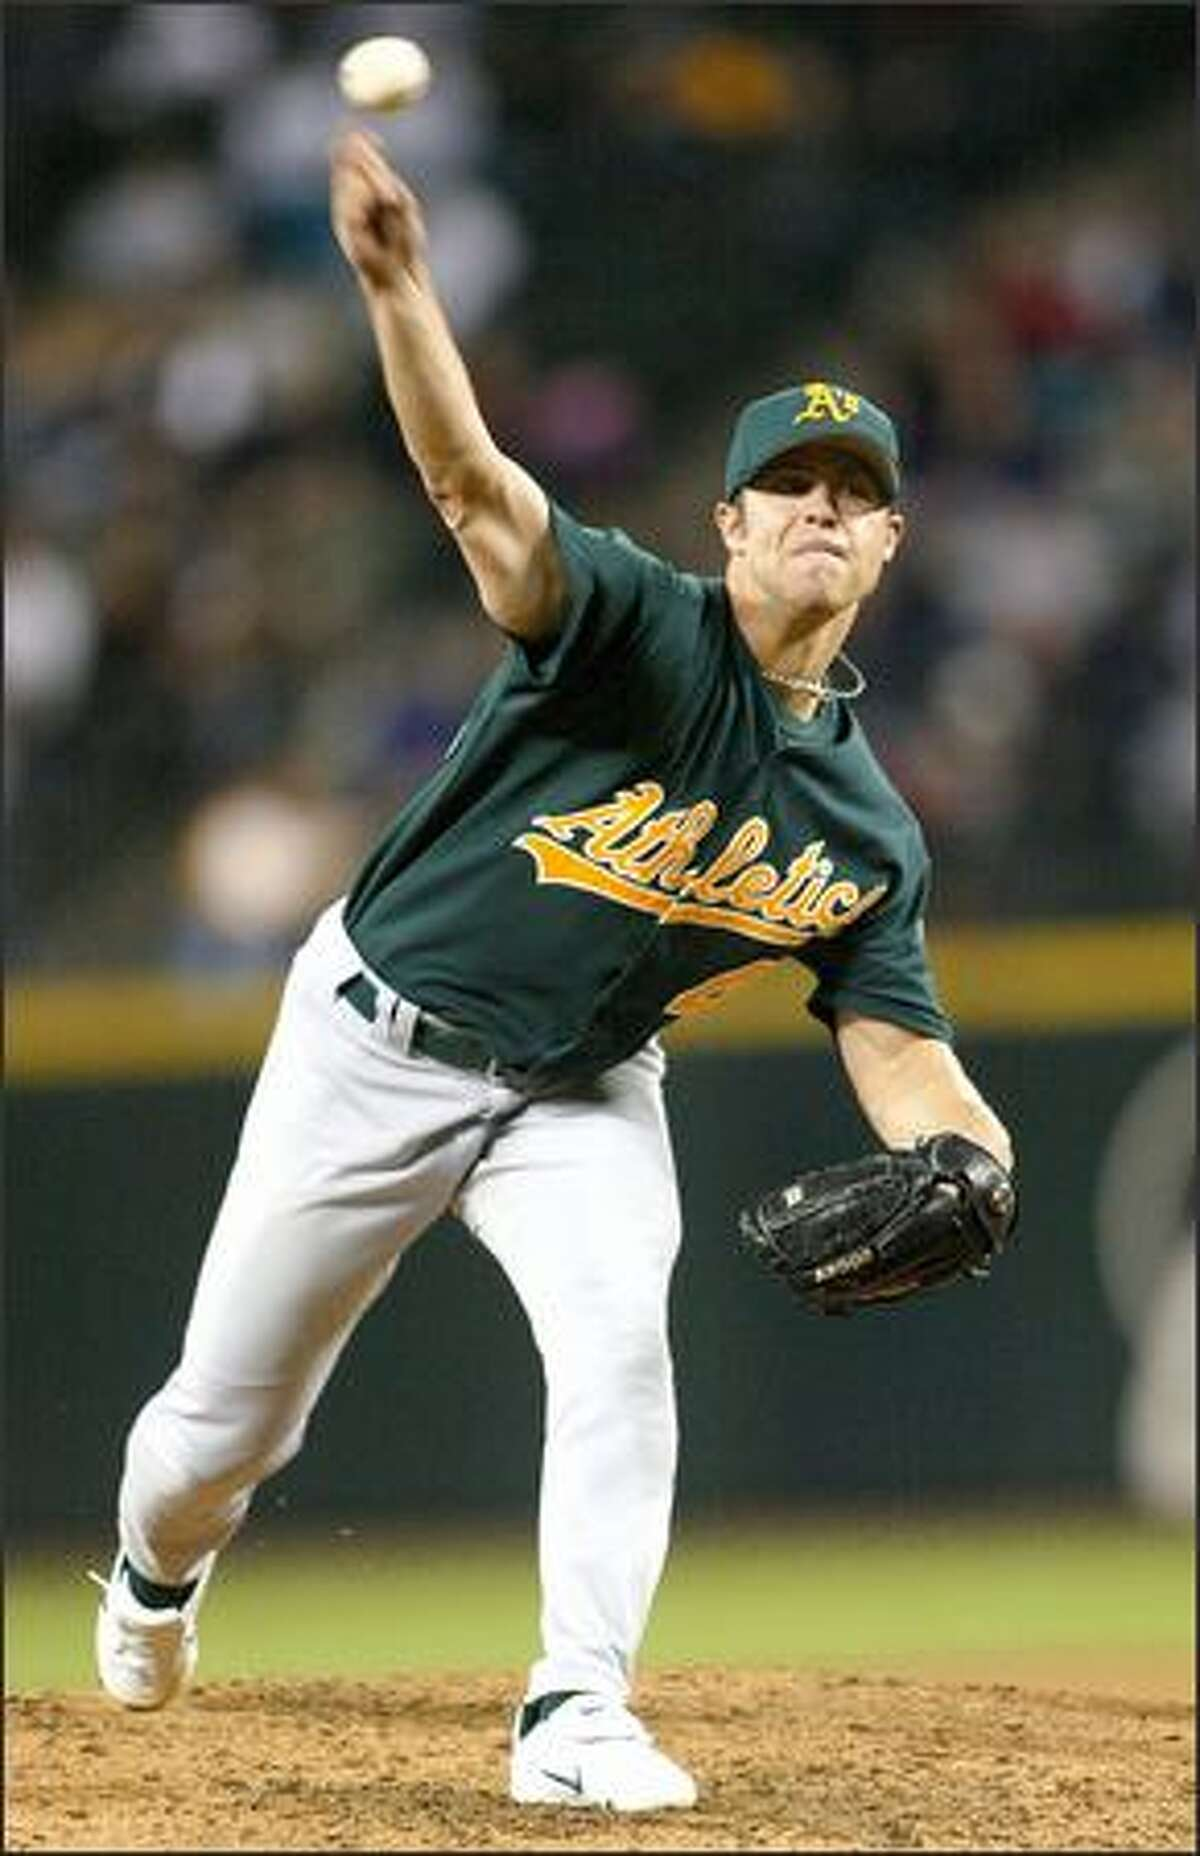 Oakland's Rich Harden struck out nine and allowed only three hits in seven innings of work.